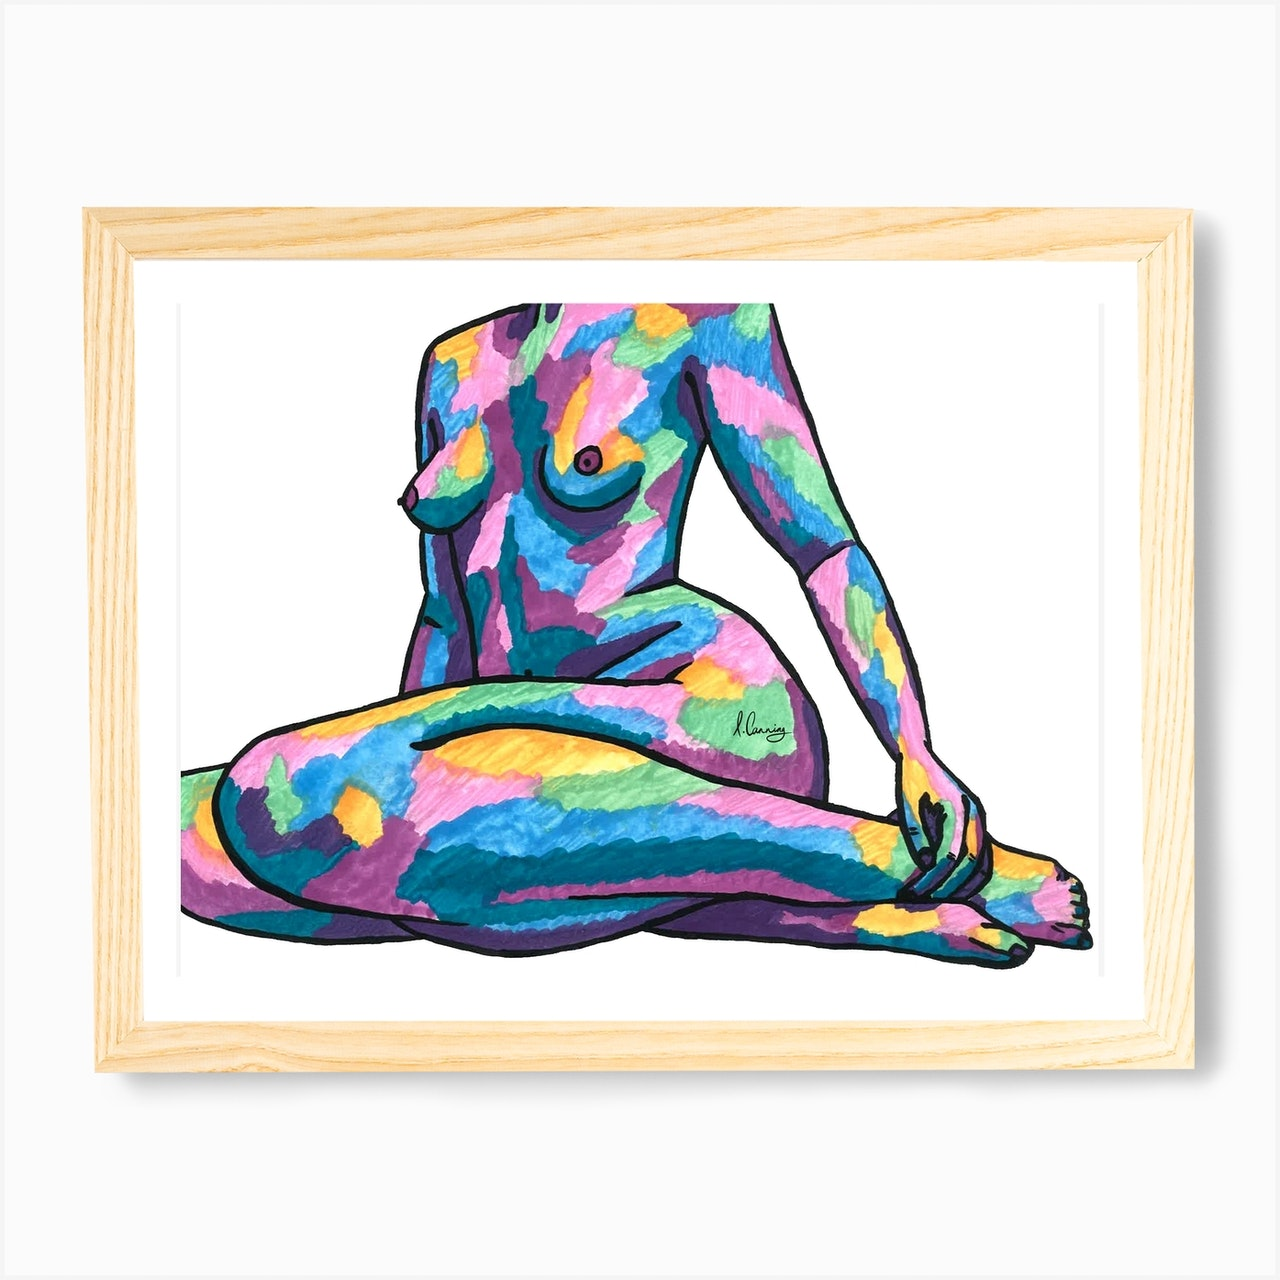 Peachy Nude Woman Art Print by Art by Izzy - Fy